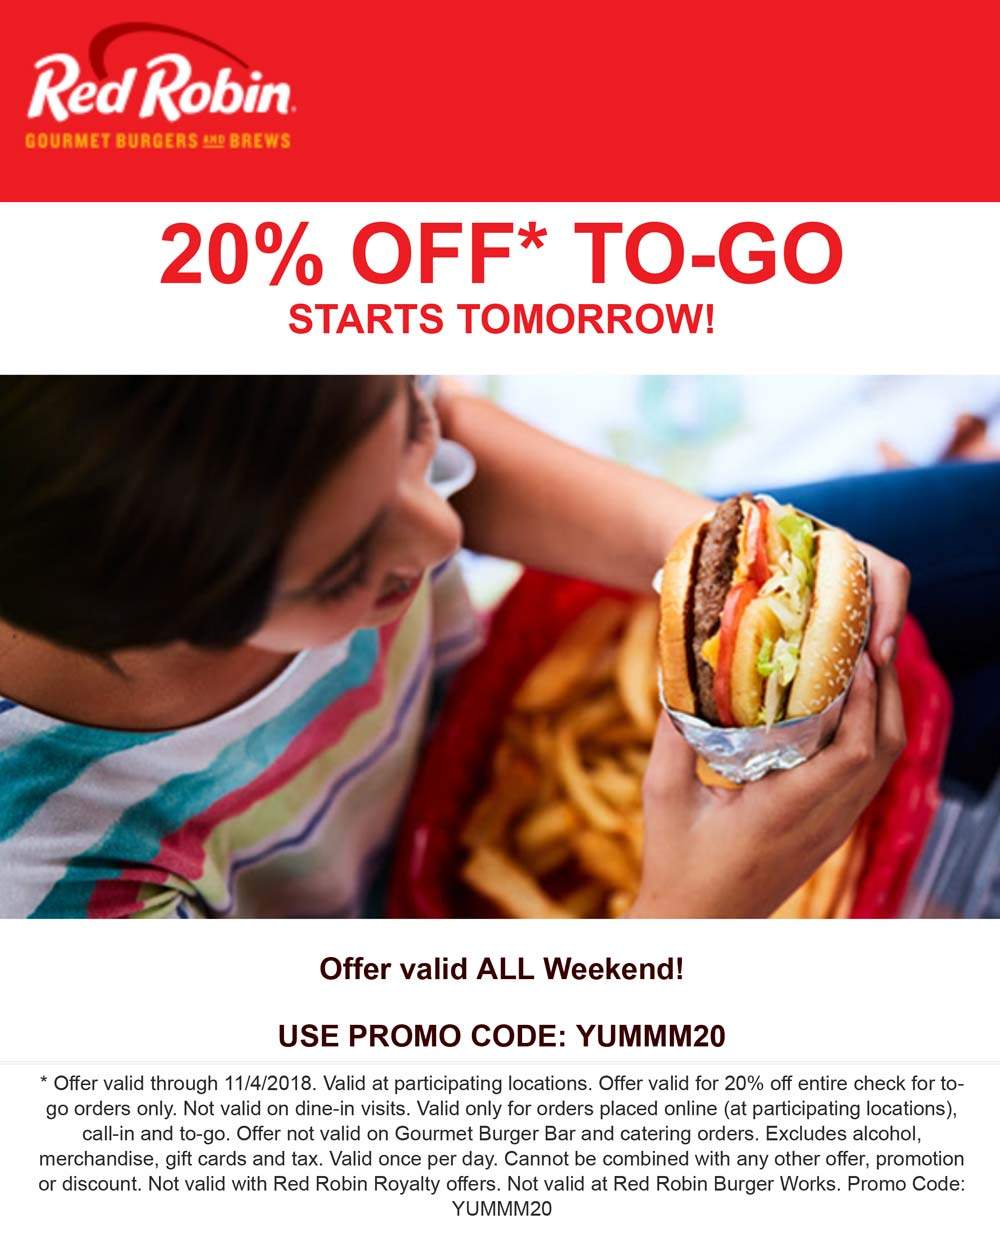 Red Robin Coupon November 2019 20% off to-go at Red Robin restaurants via promo code YUMMM20